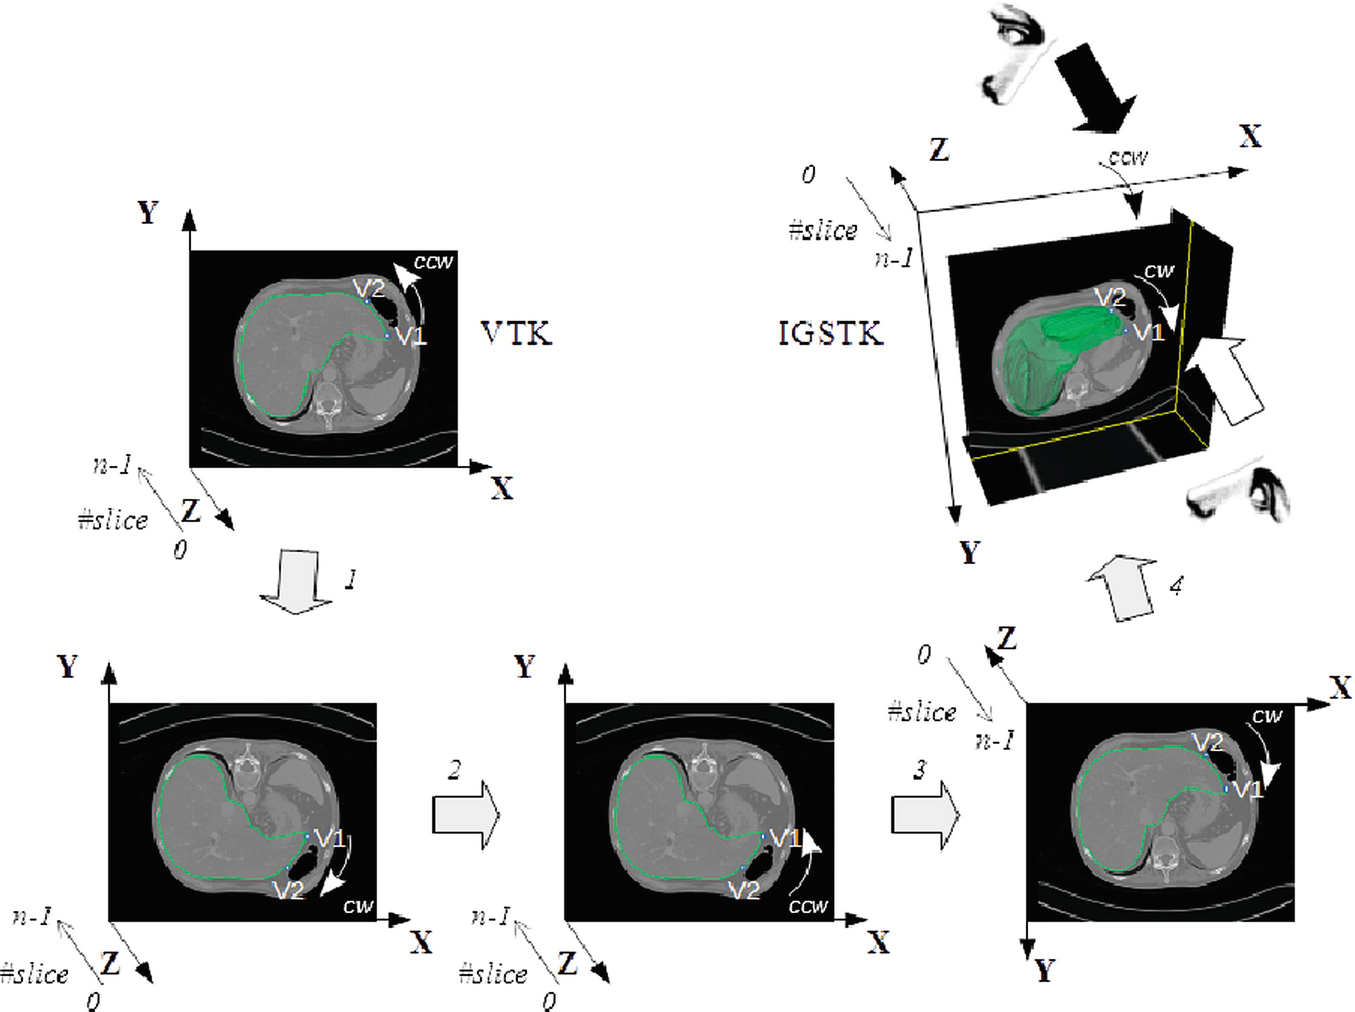 Geometric and Topological Modelling of Organs and Vascular